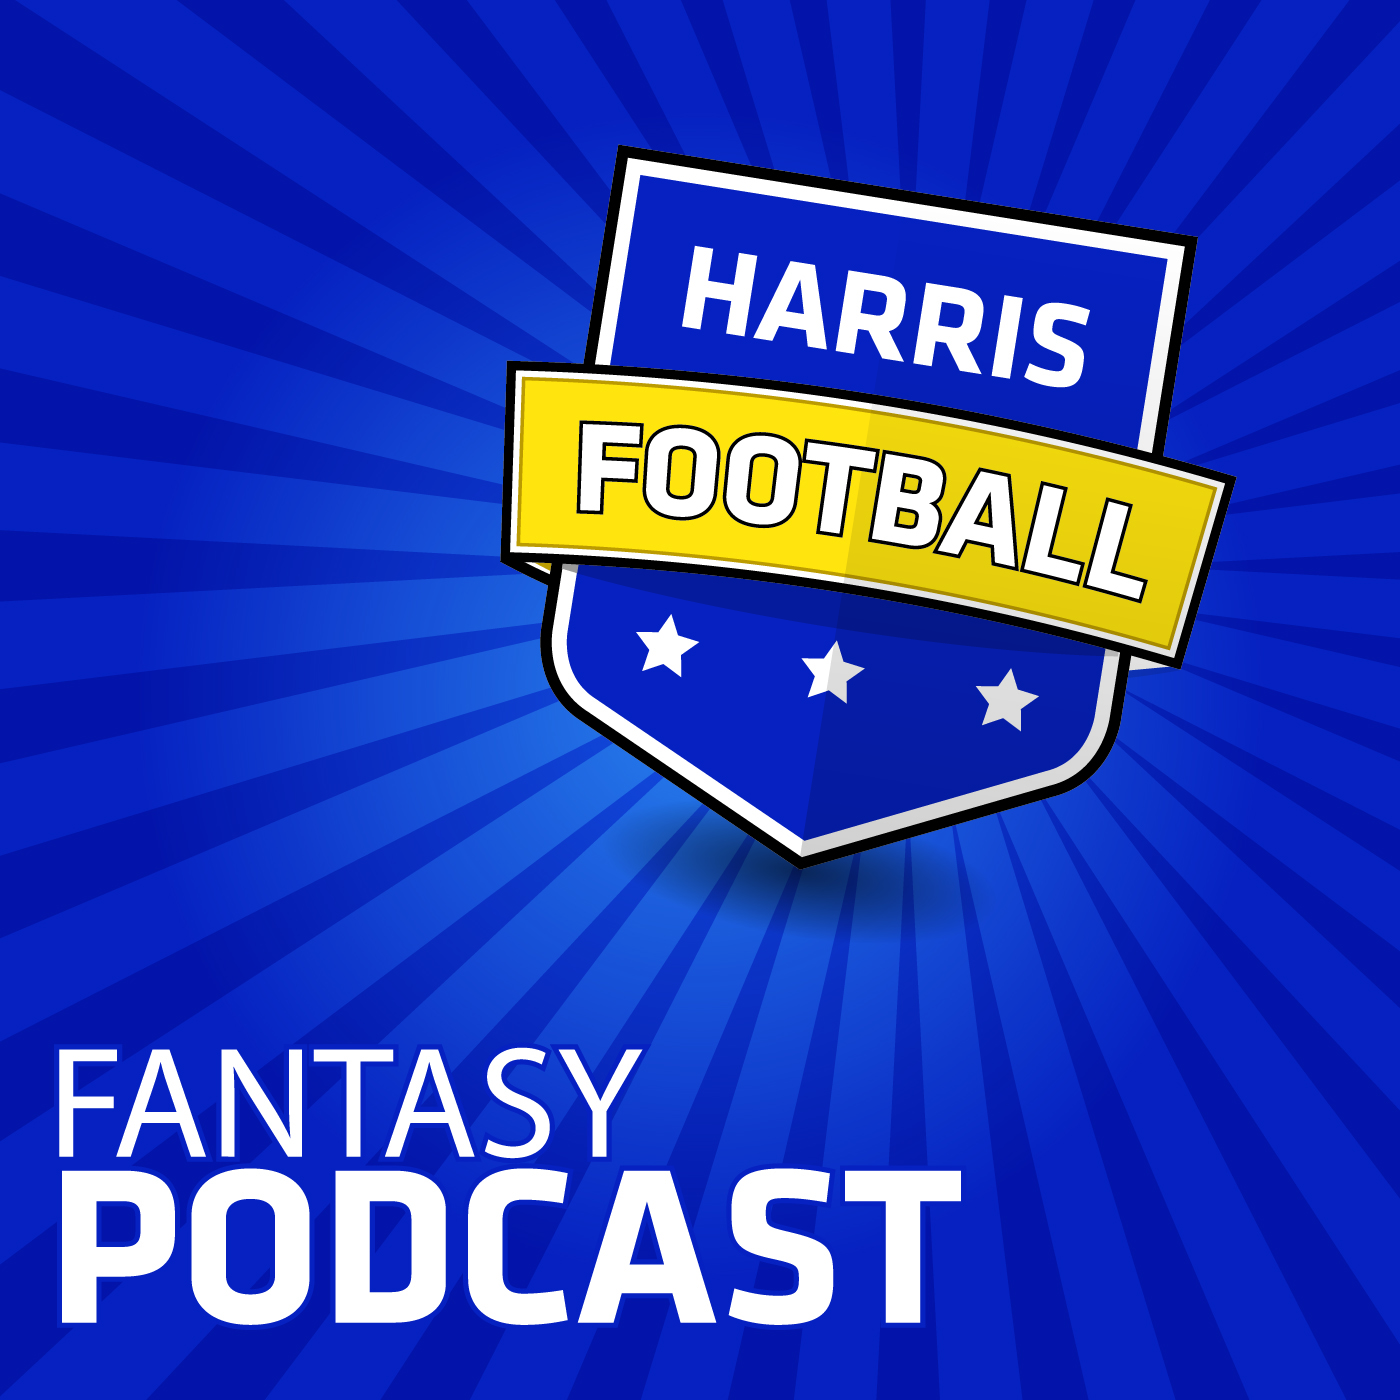 Harris Football Nfl Fantasy Football Advice News Podcast